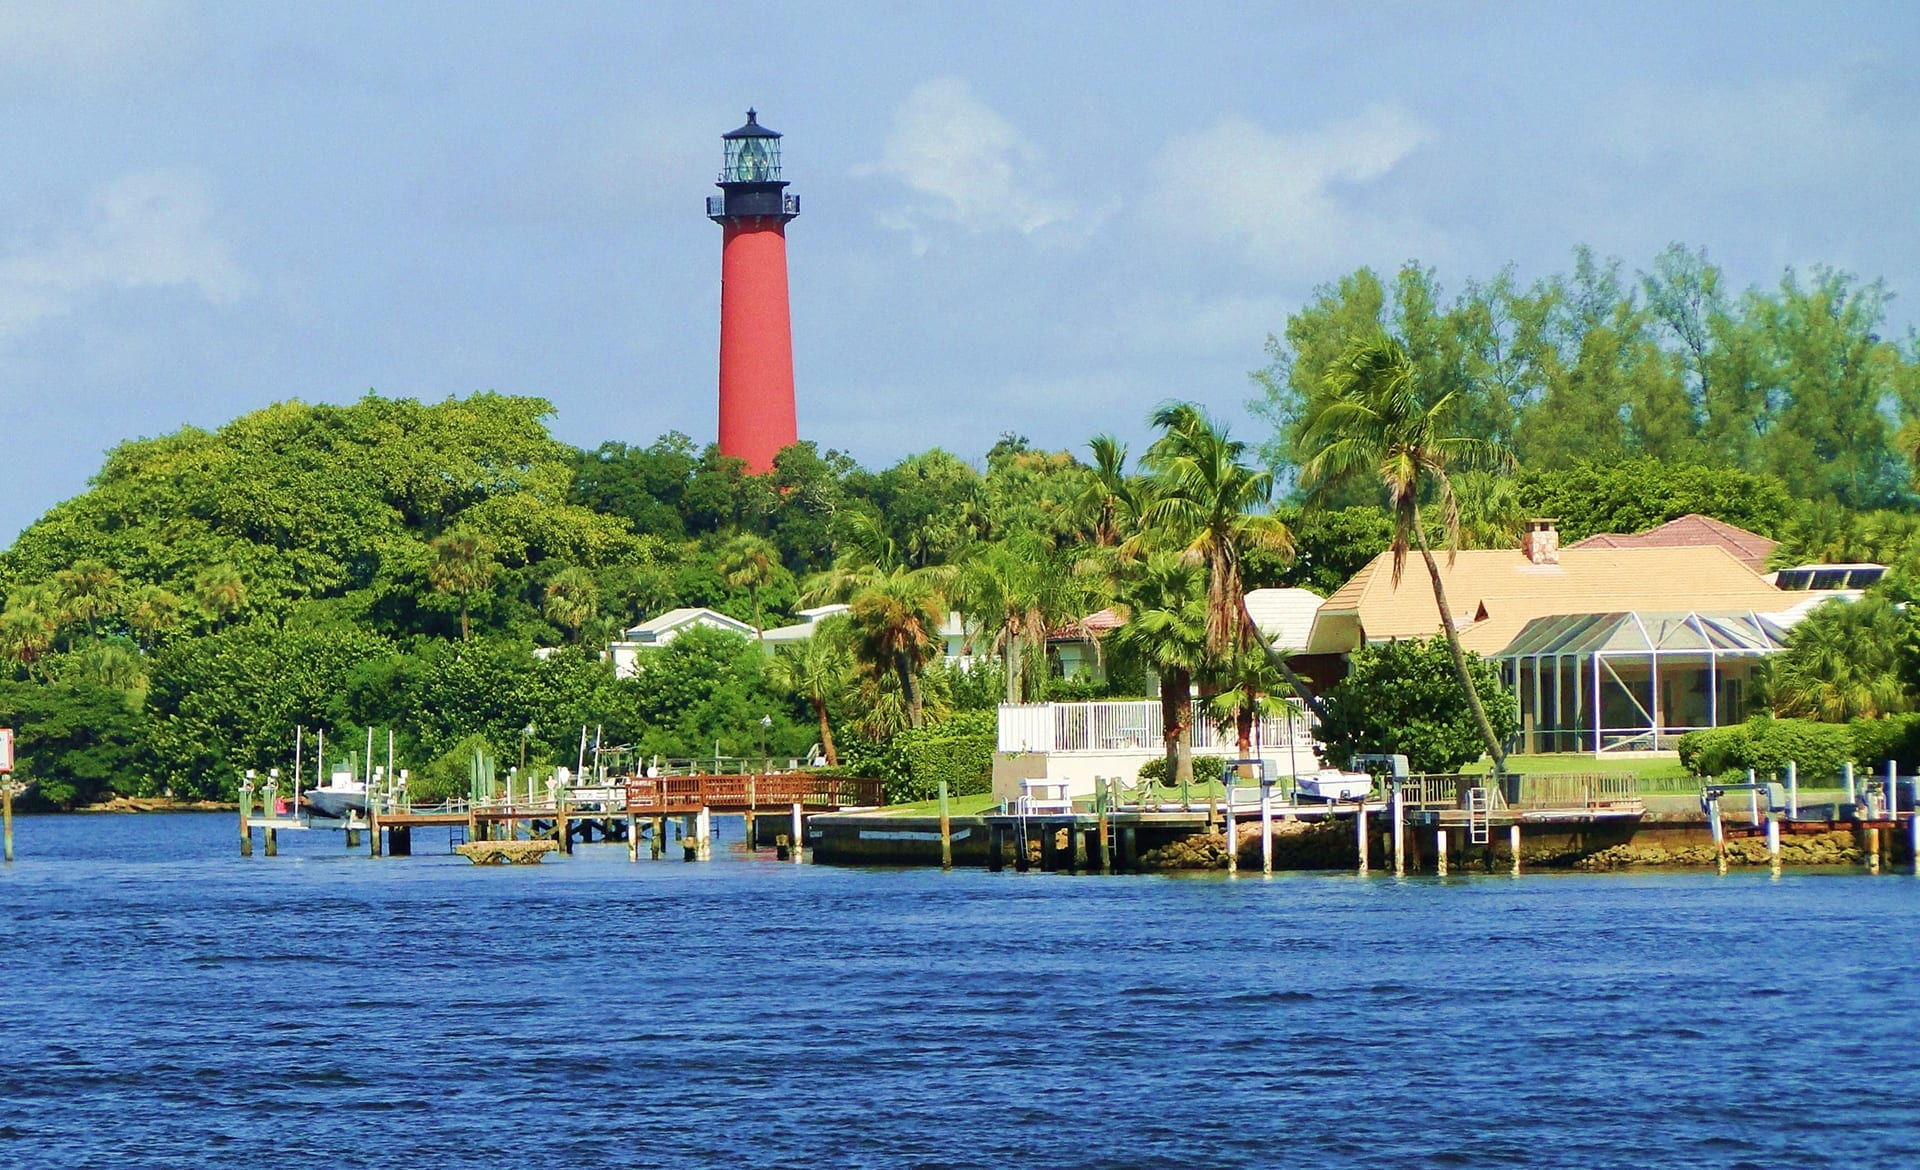 Jupiter fl-Lighthouse